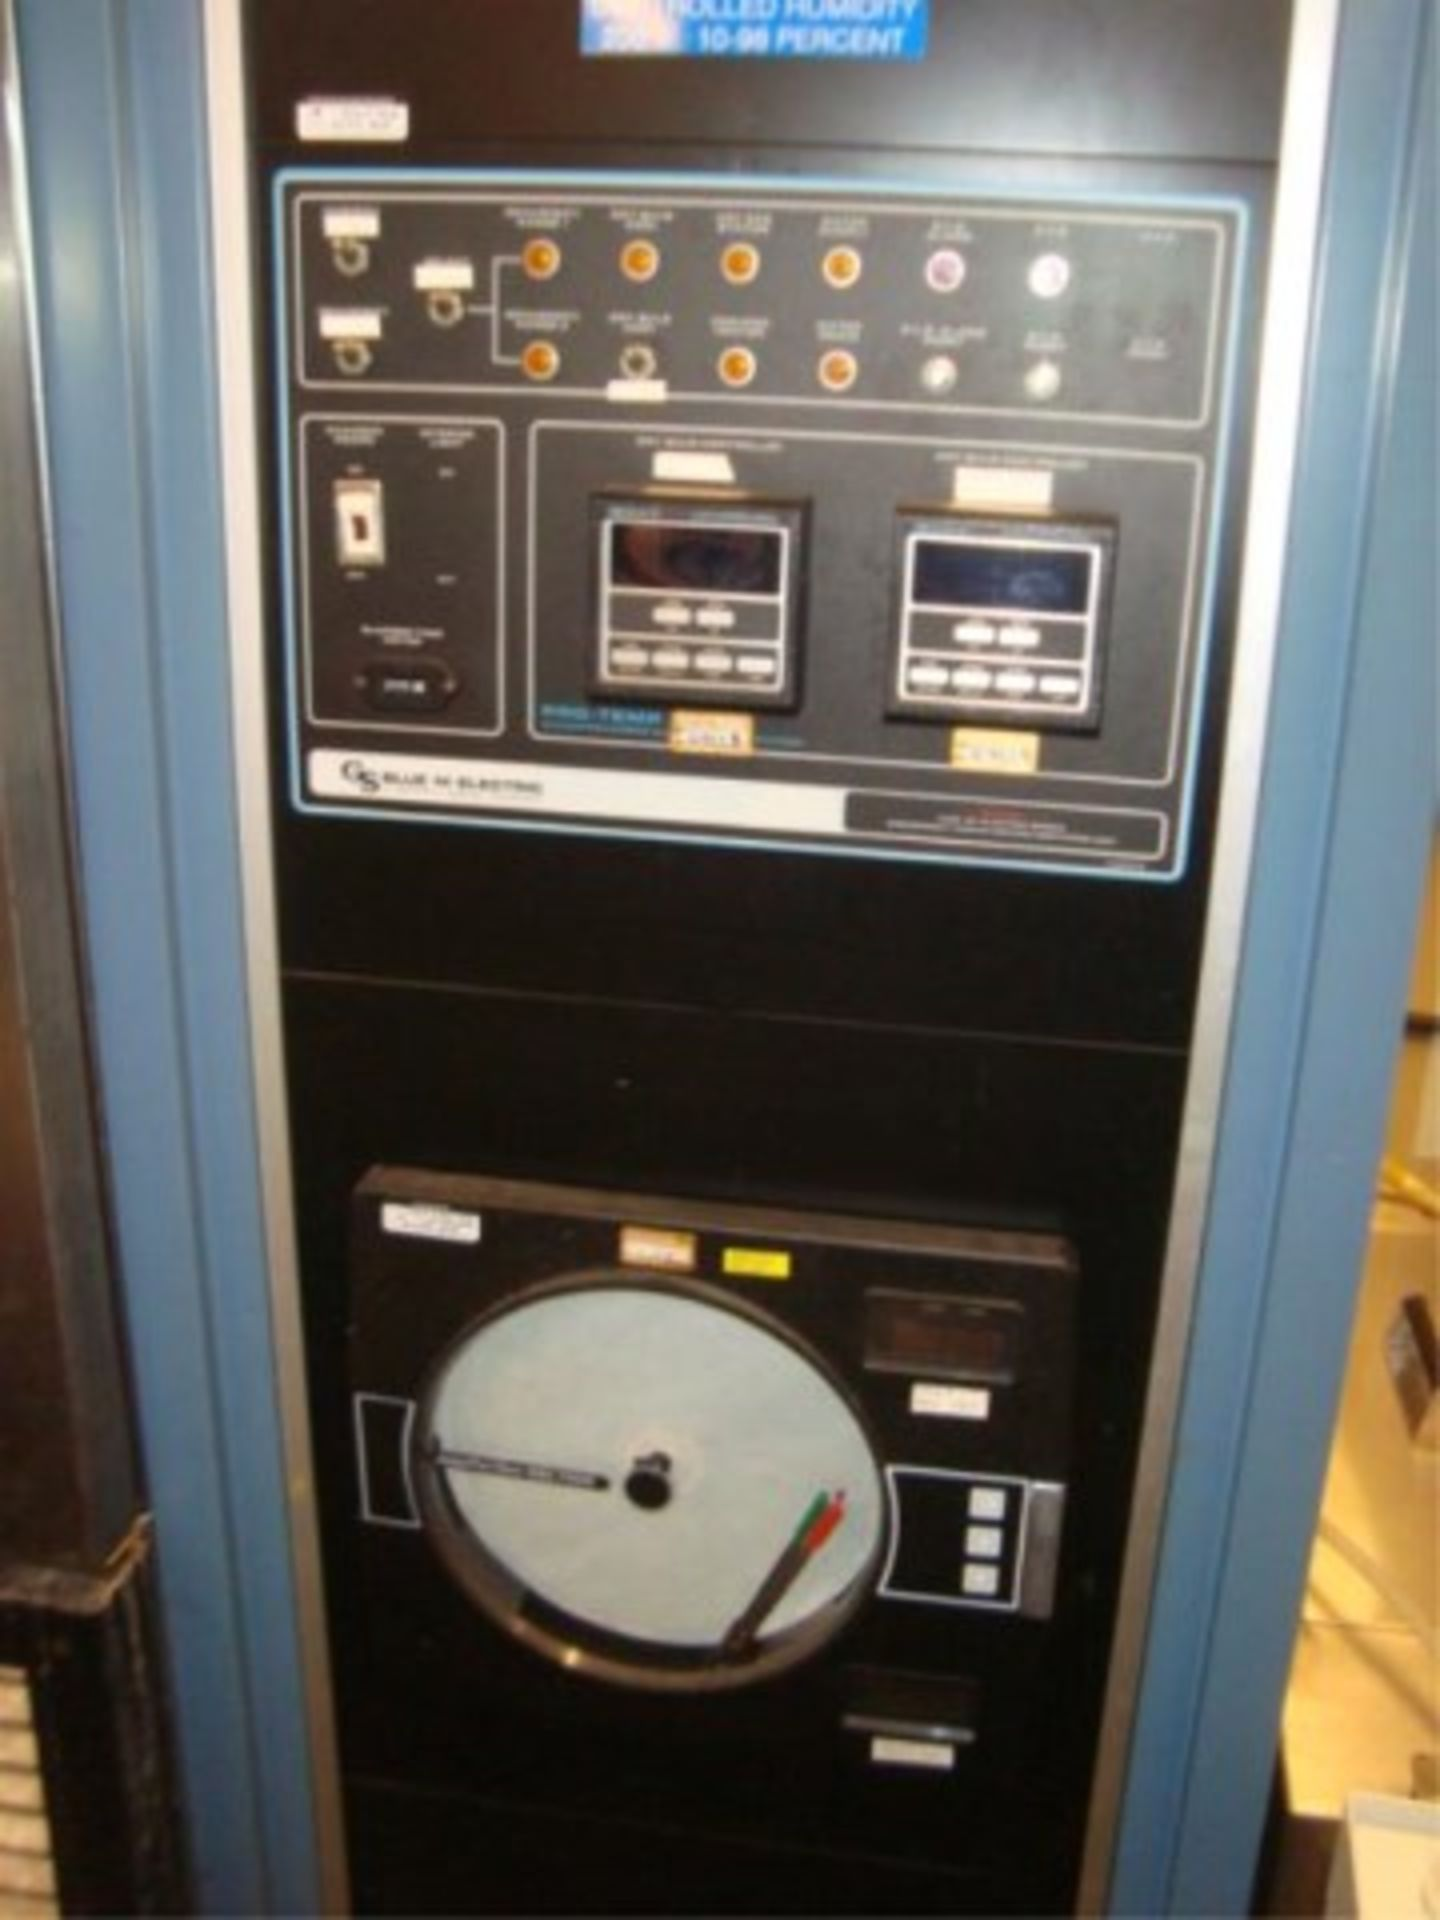 Humidity Test Chamber - Image 5 of 12